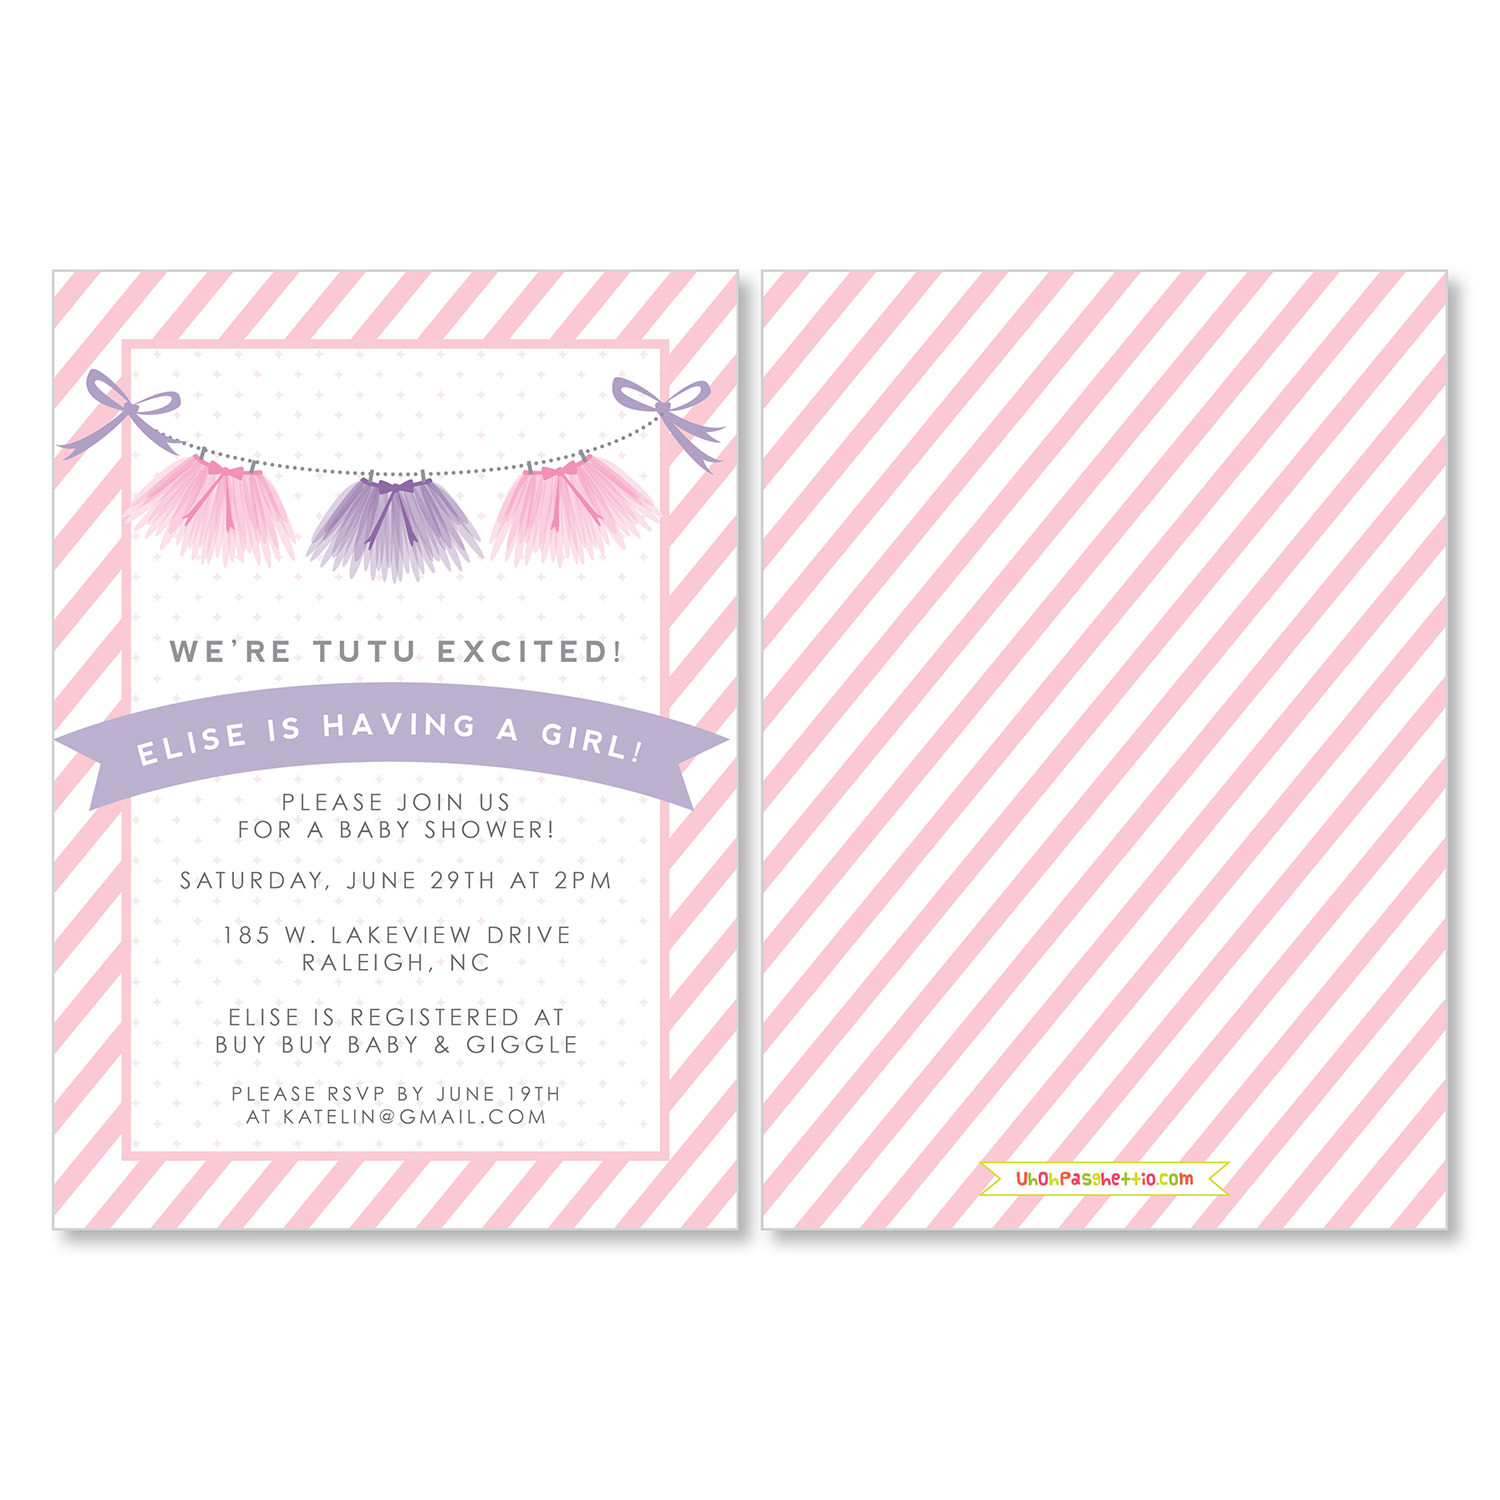 baby shower invitations tutu excited uh oh pasghettio